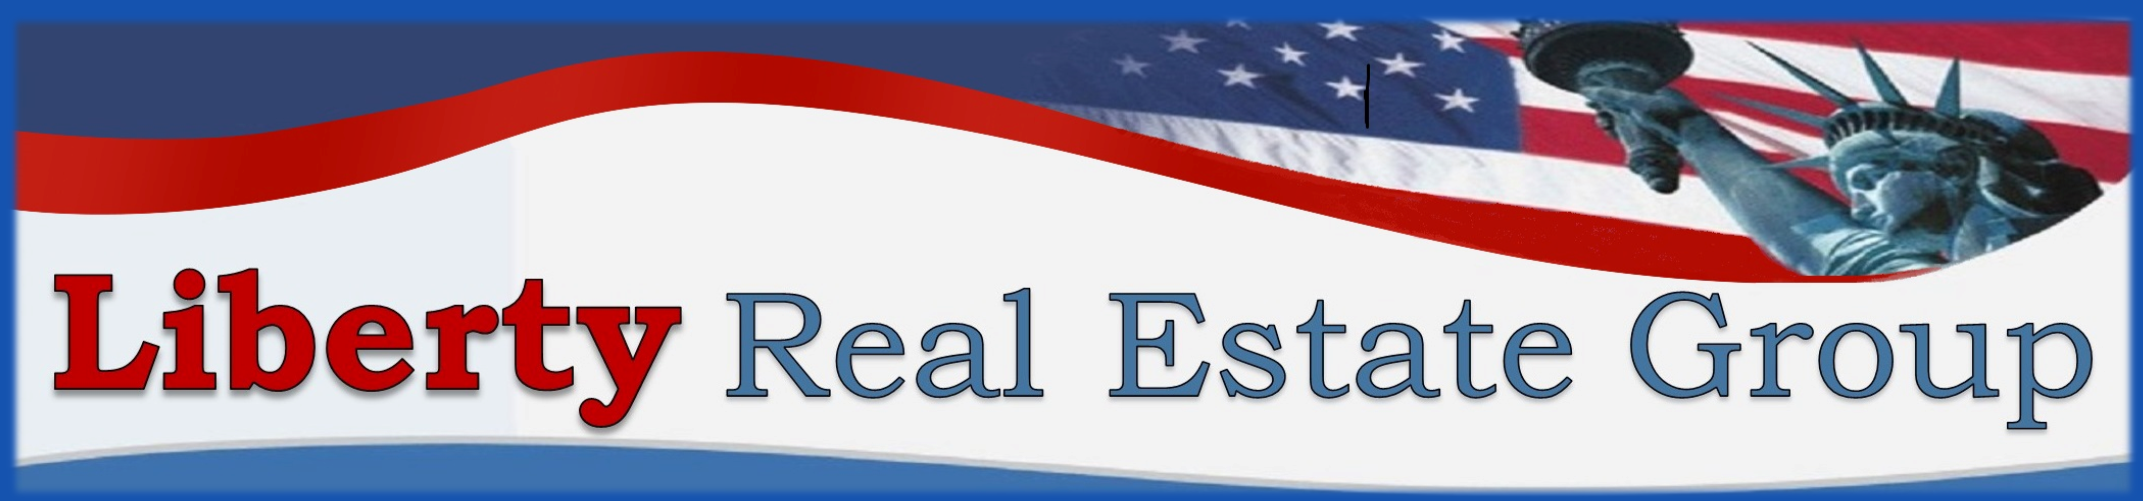 Liberty Real Estate Group